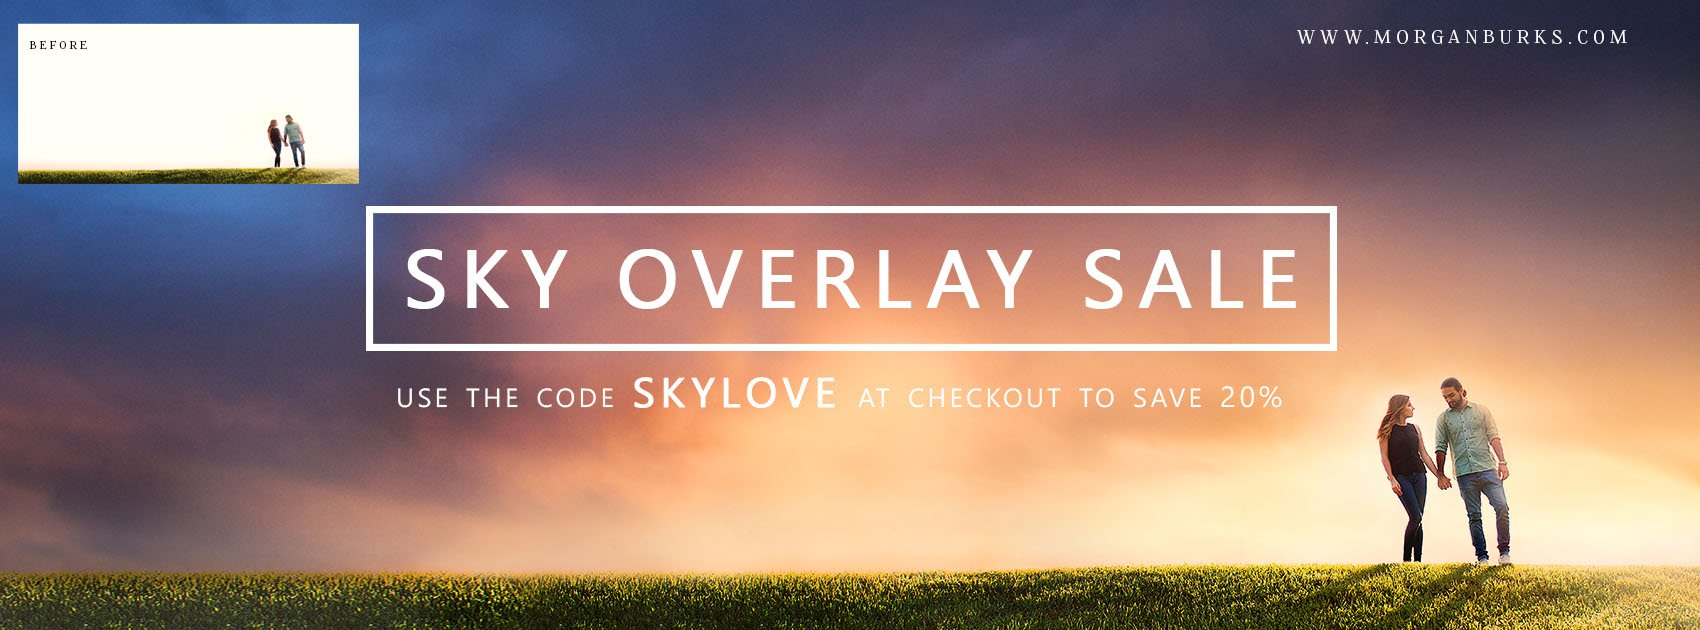 Save 20% on Sky Overlays when use the code SKYLOVE at www.morganburks.com